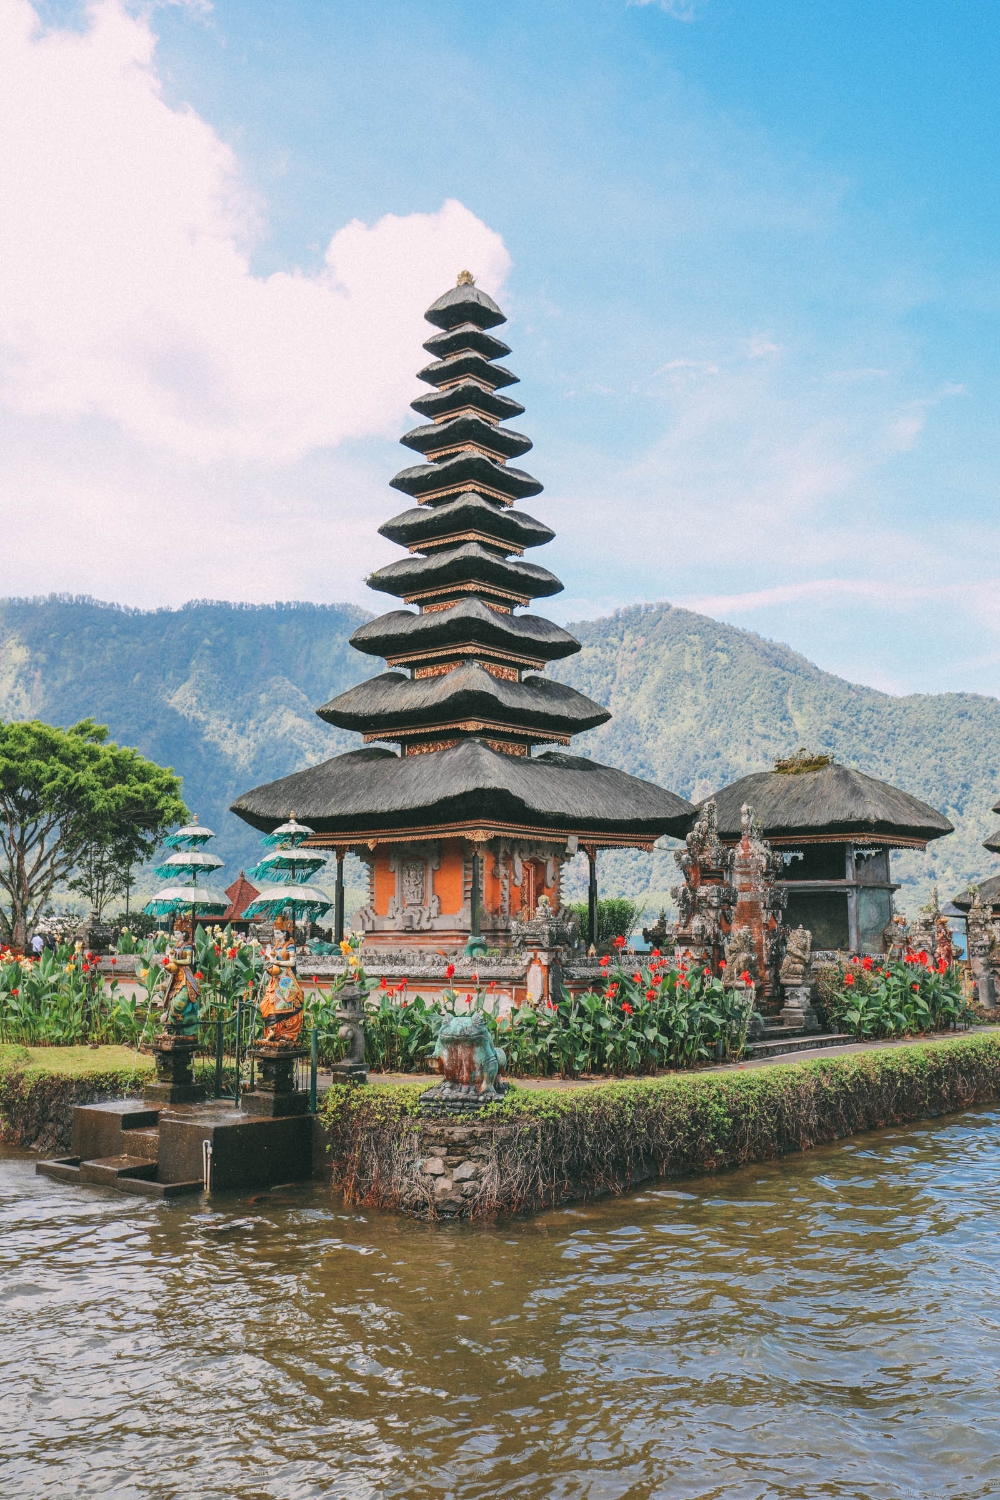 11 Best Temples In Bali To Visit - Hand Luggage Only - Travel, Food & Photography Blog